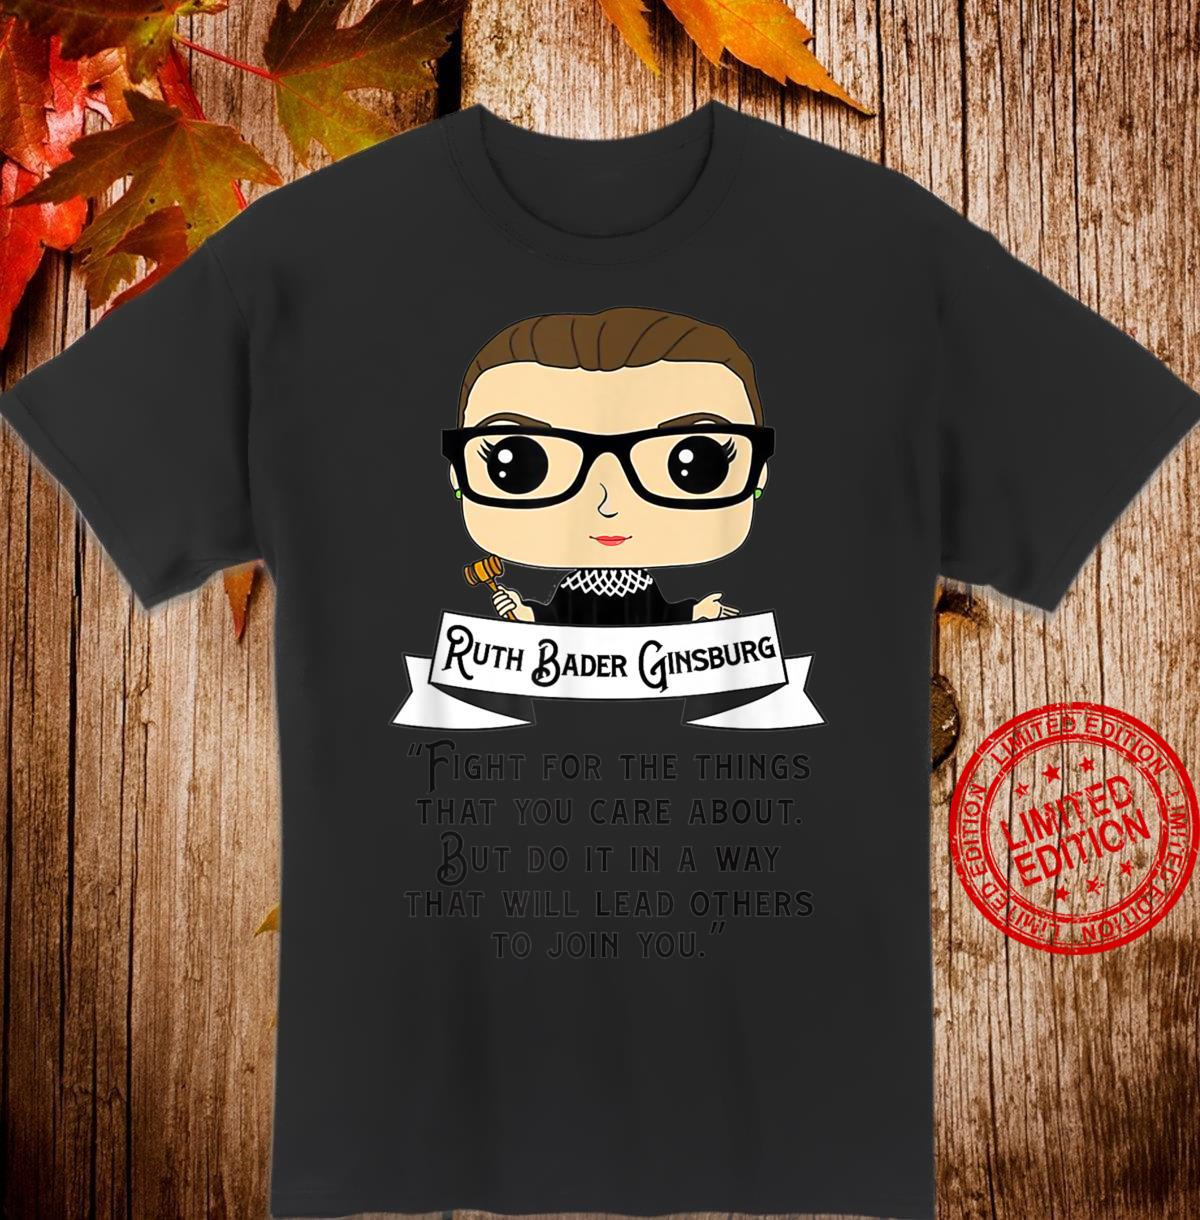 Women Belong In All Places Feminist Ruth Bader Ginsburg Shirt